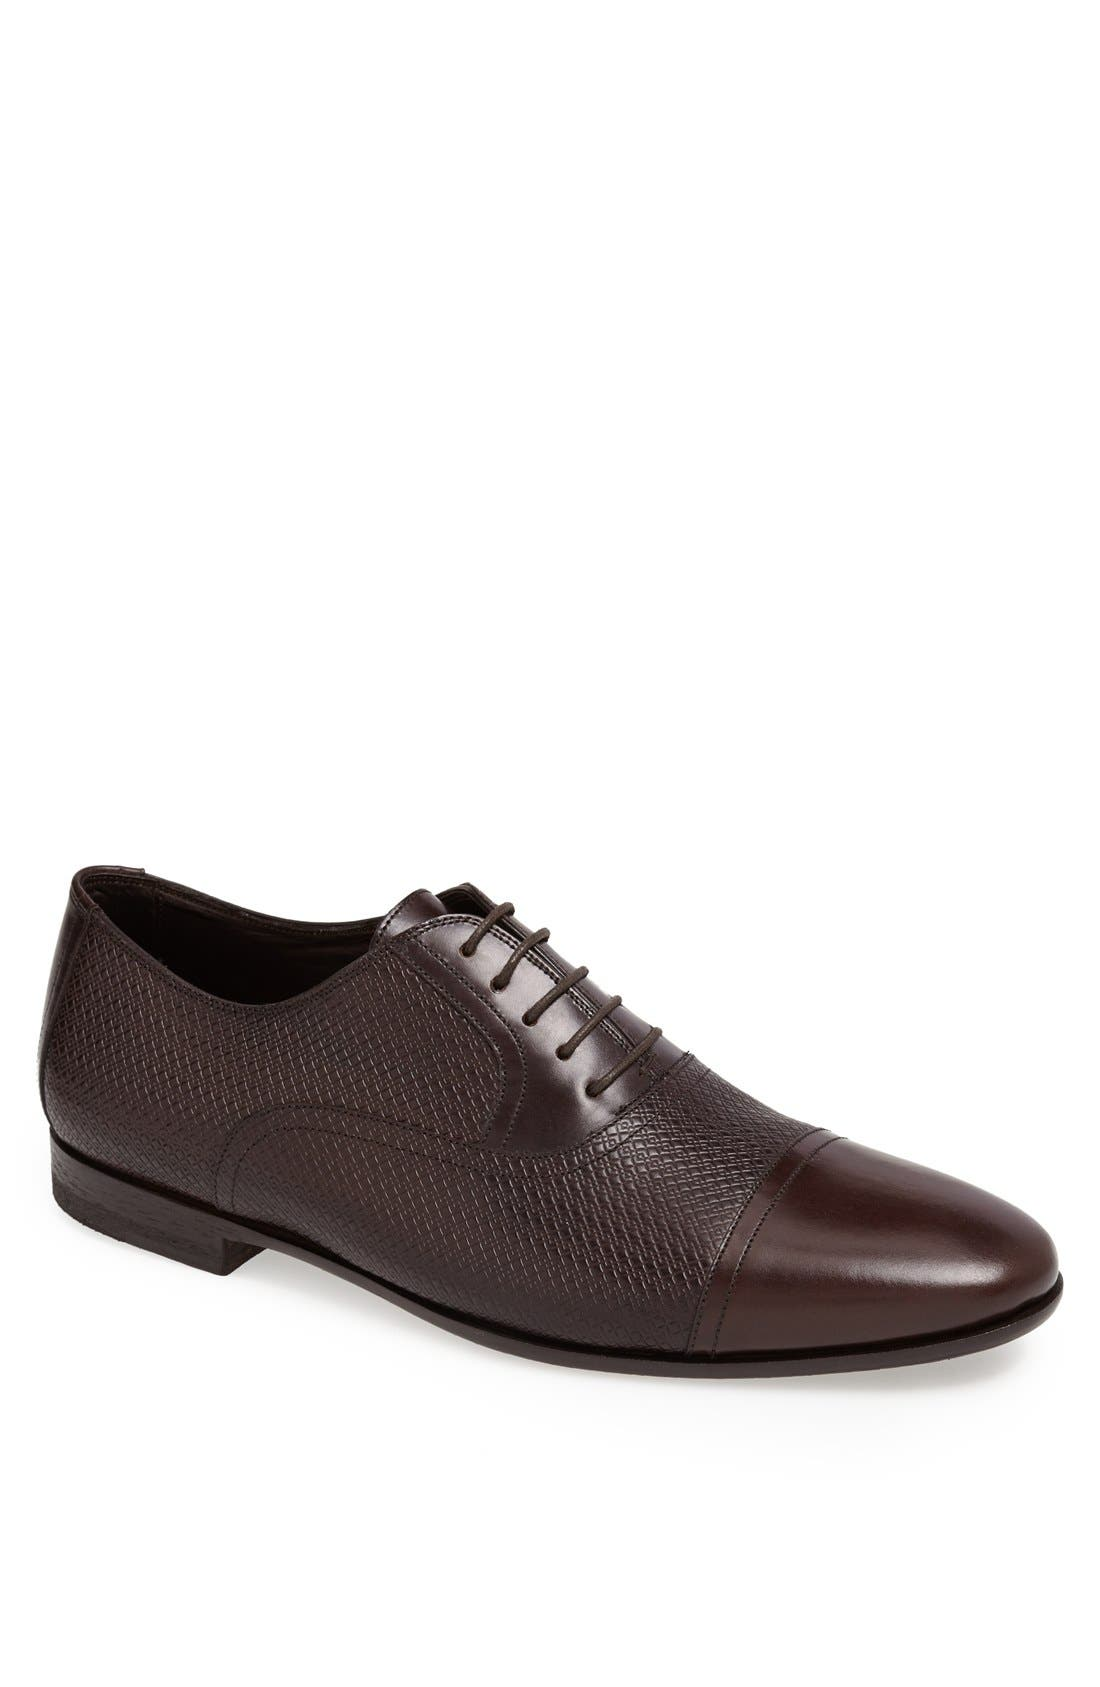 Alternate Image 1 Selected - Canali Cap Toe Oxford (Men)